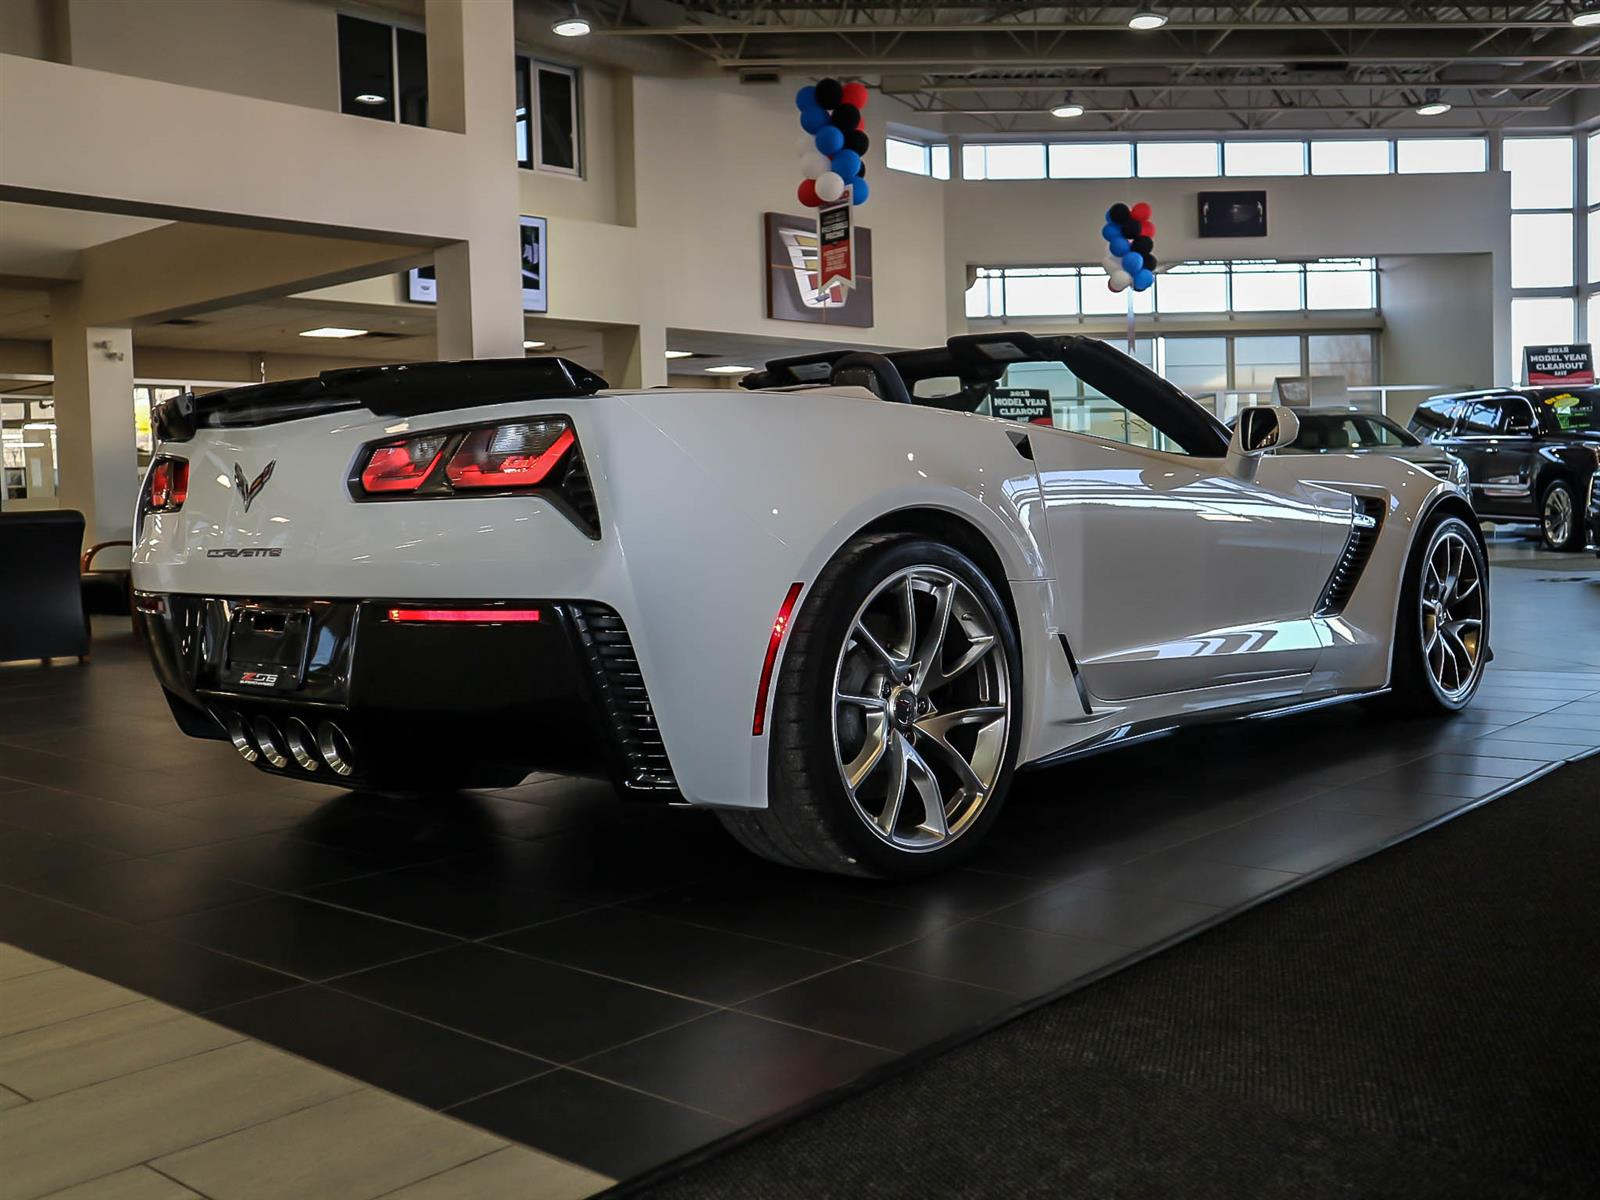 Used 2016 Chevrolet Corvette in Ottawa,ON